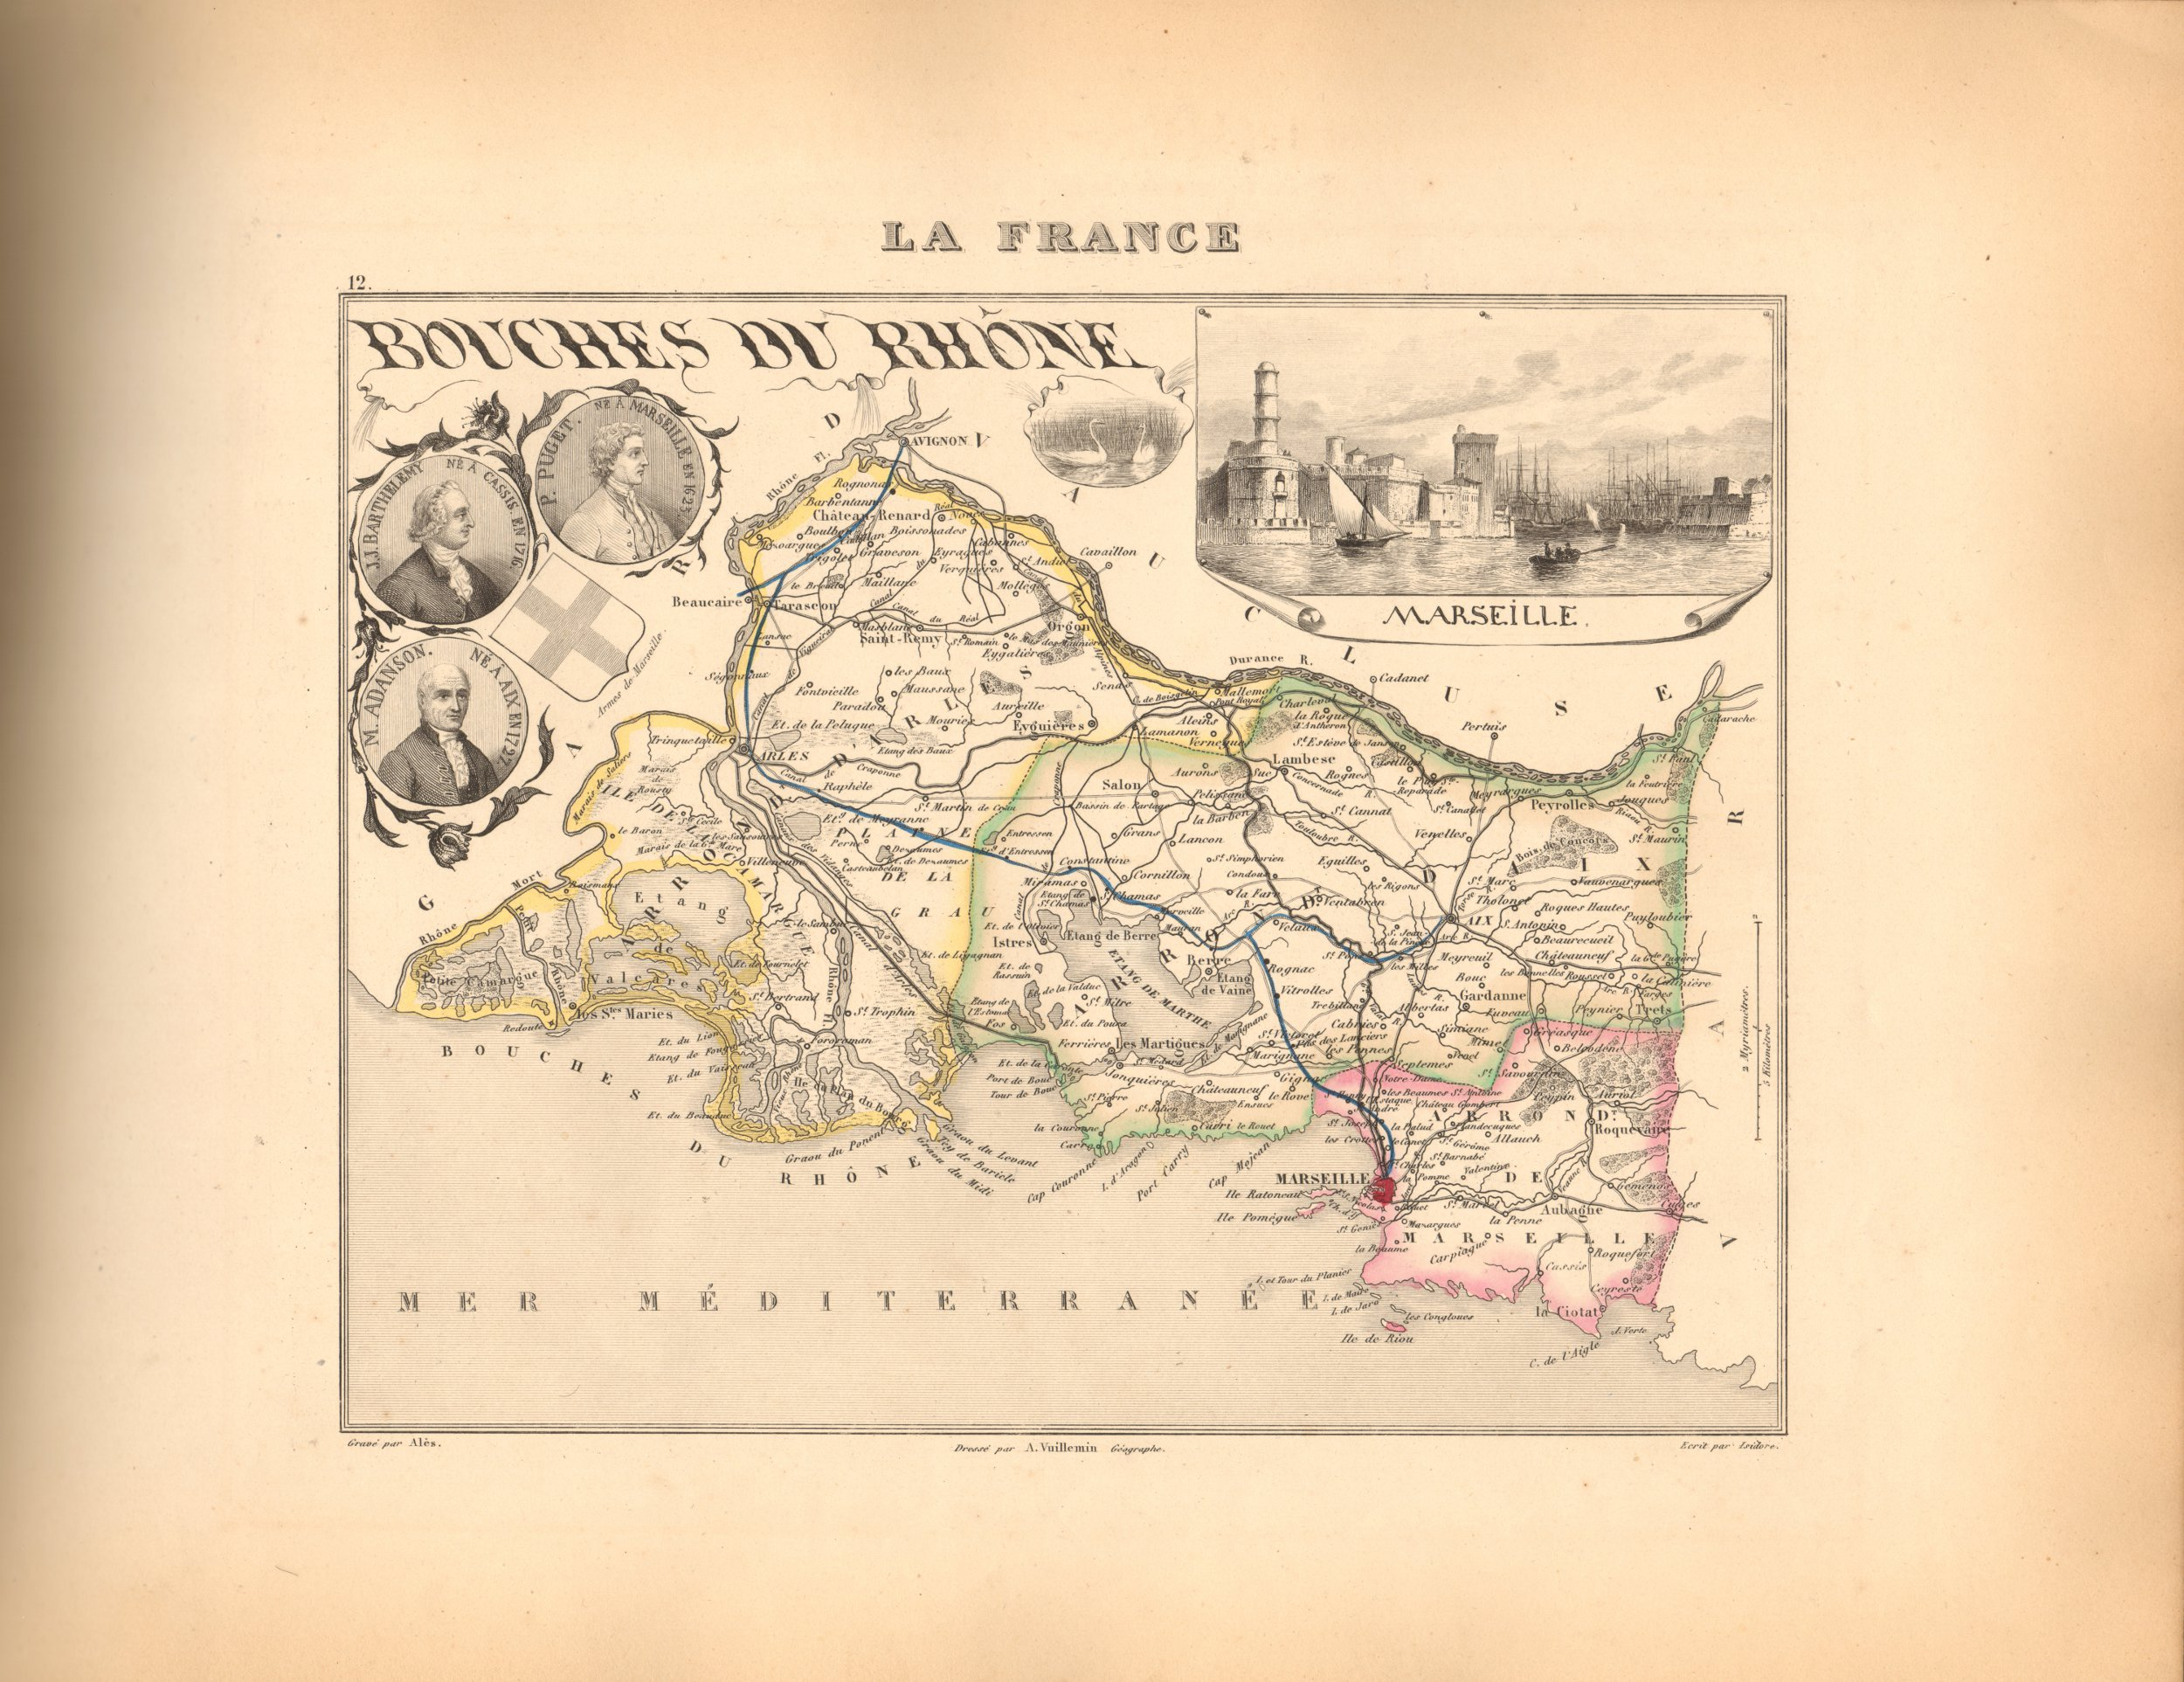 Bouches du Rhone - French Department Map